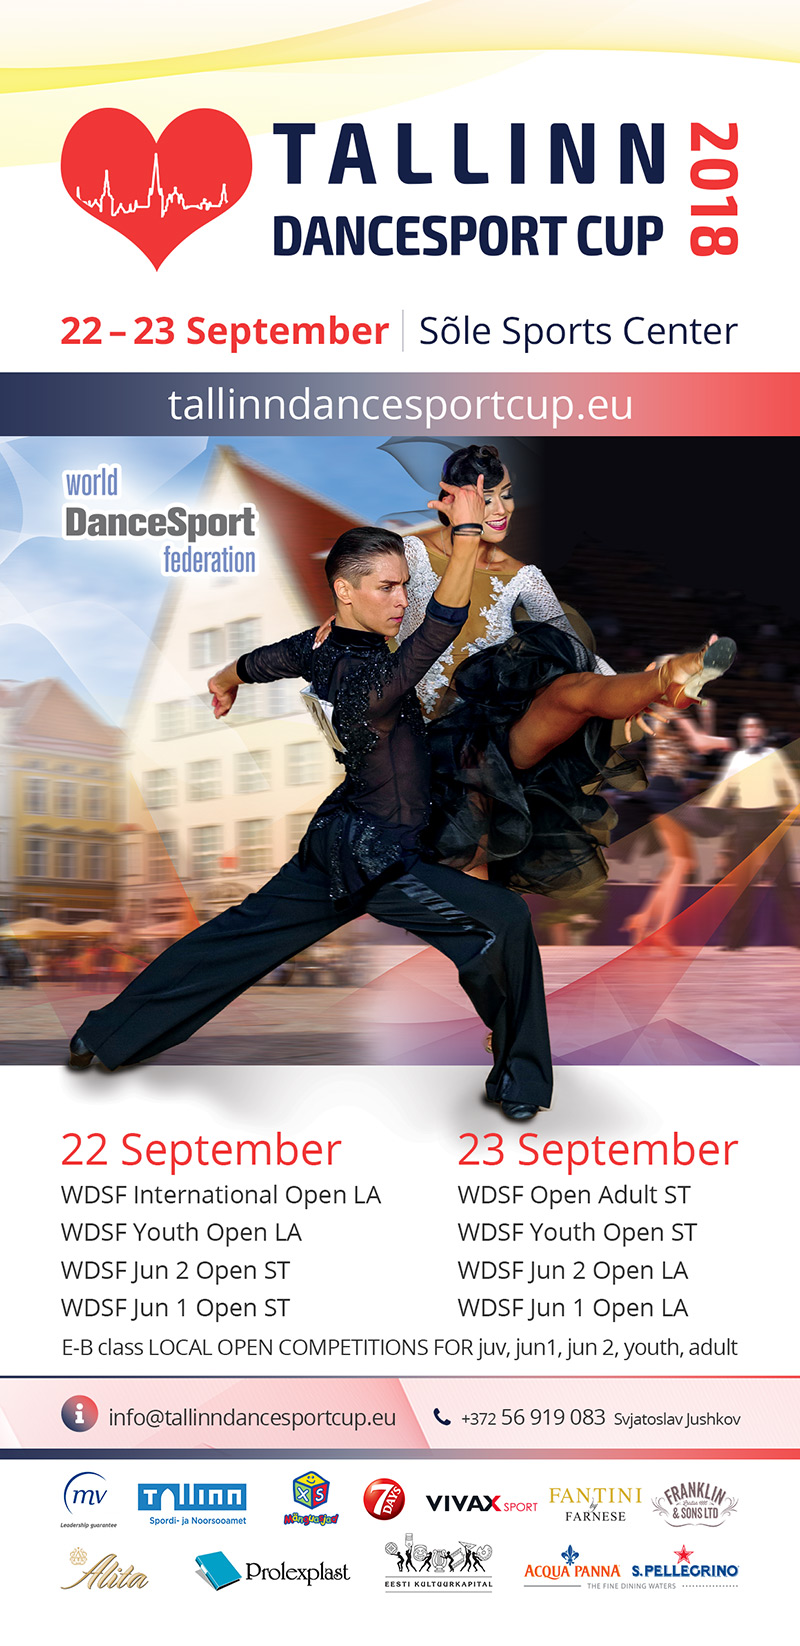 Tallinn Dance Sport Cup 2018, 22 – 23 September in Sõle Sports Center